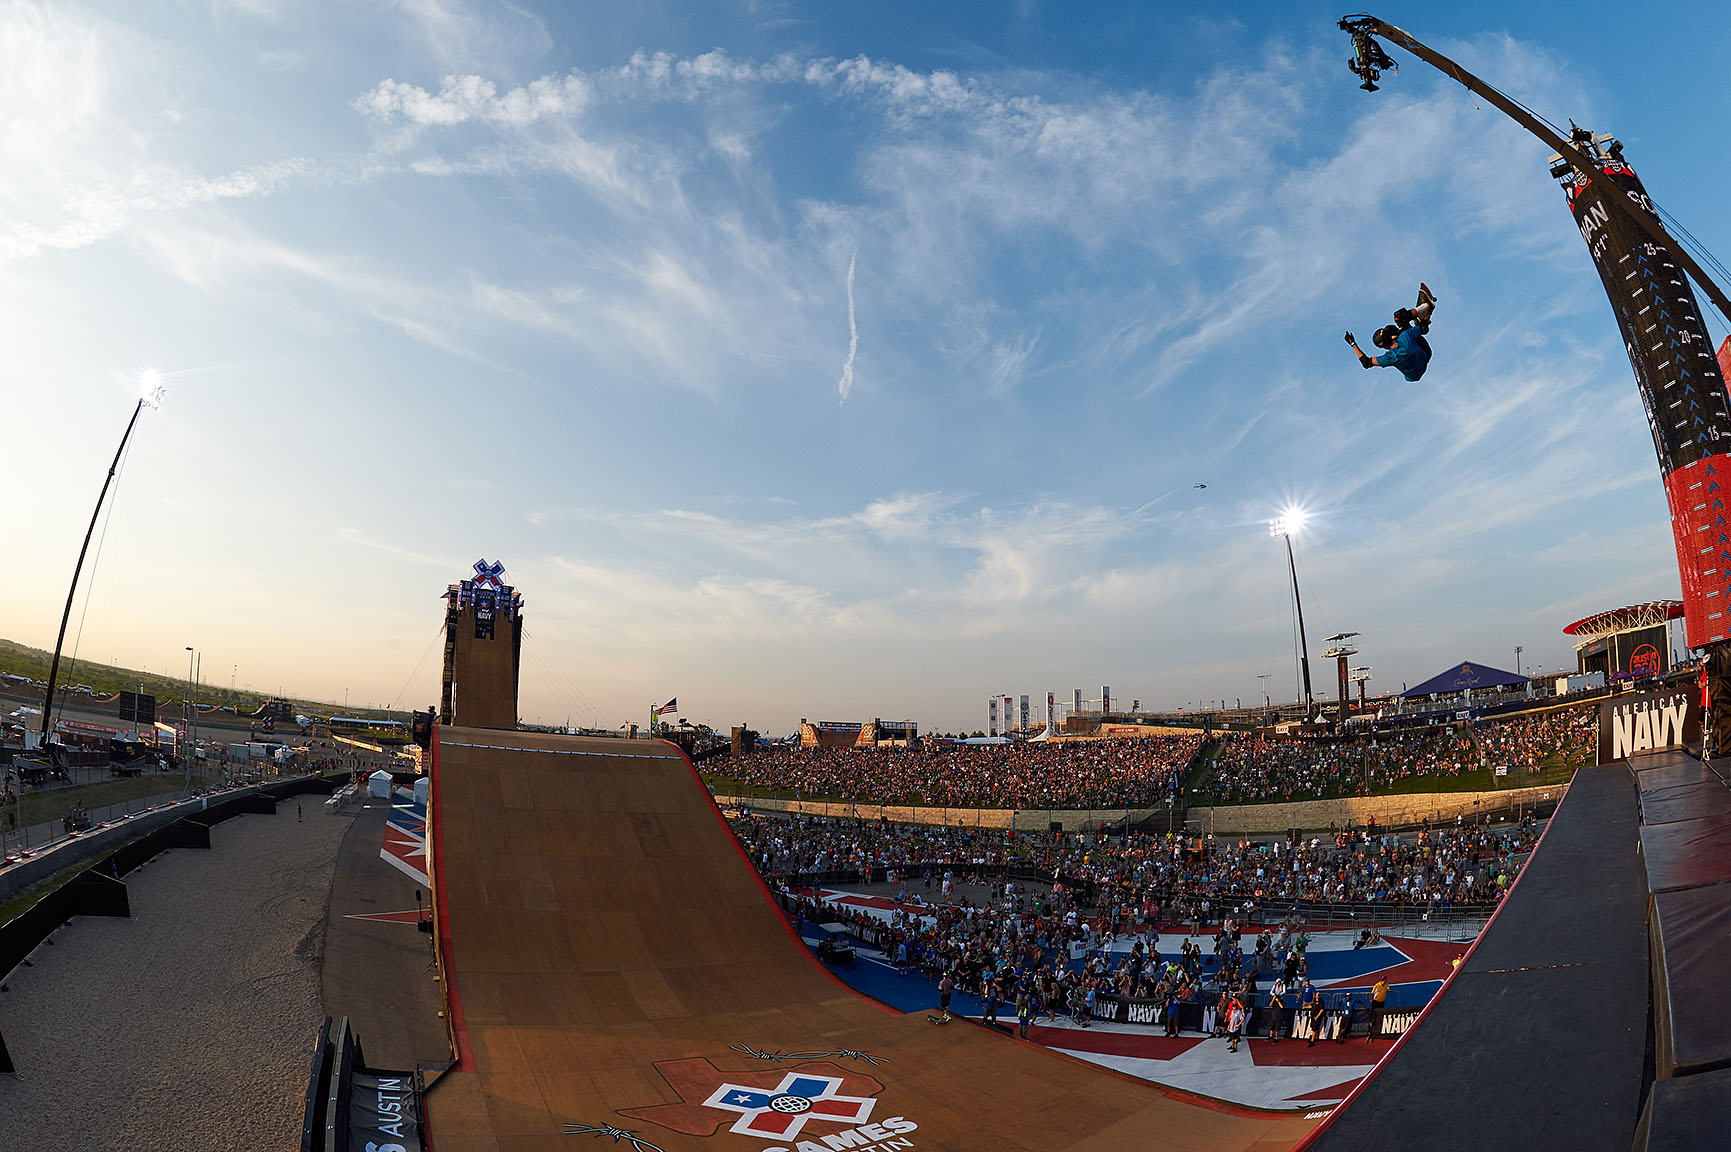 X Games Big Air Skateboard